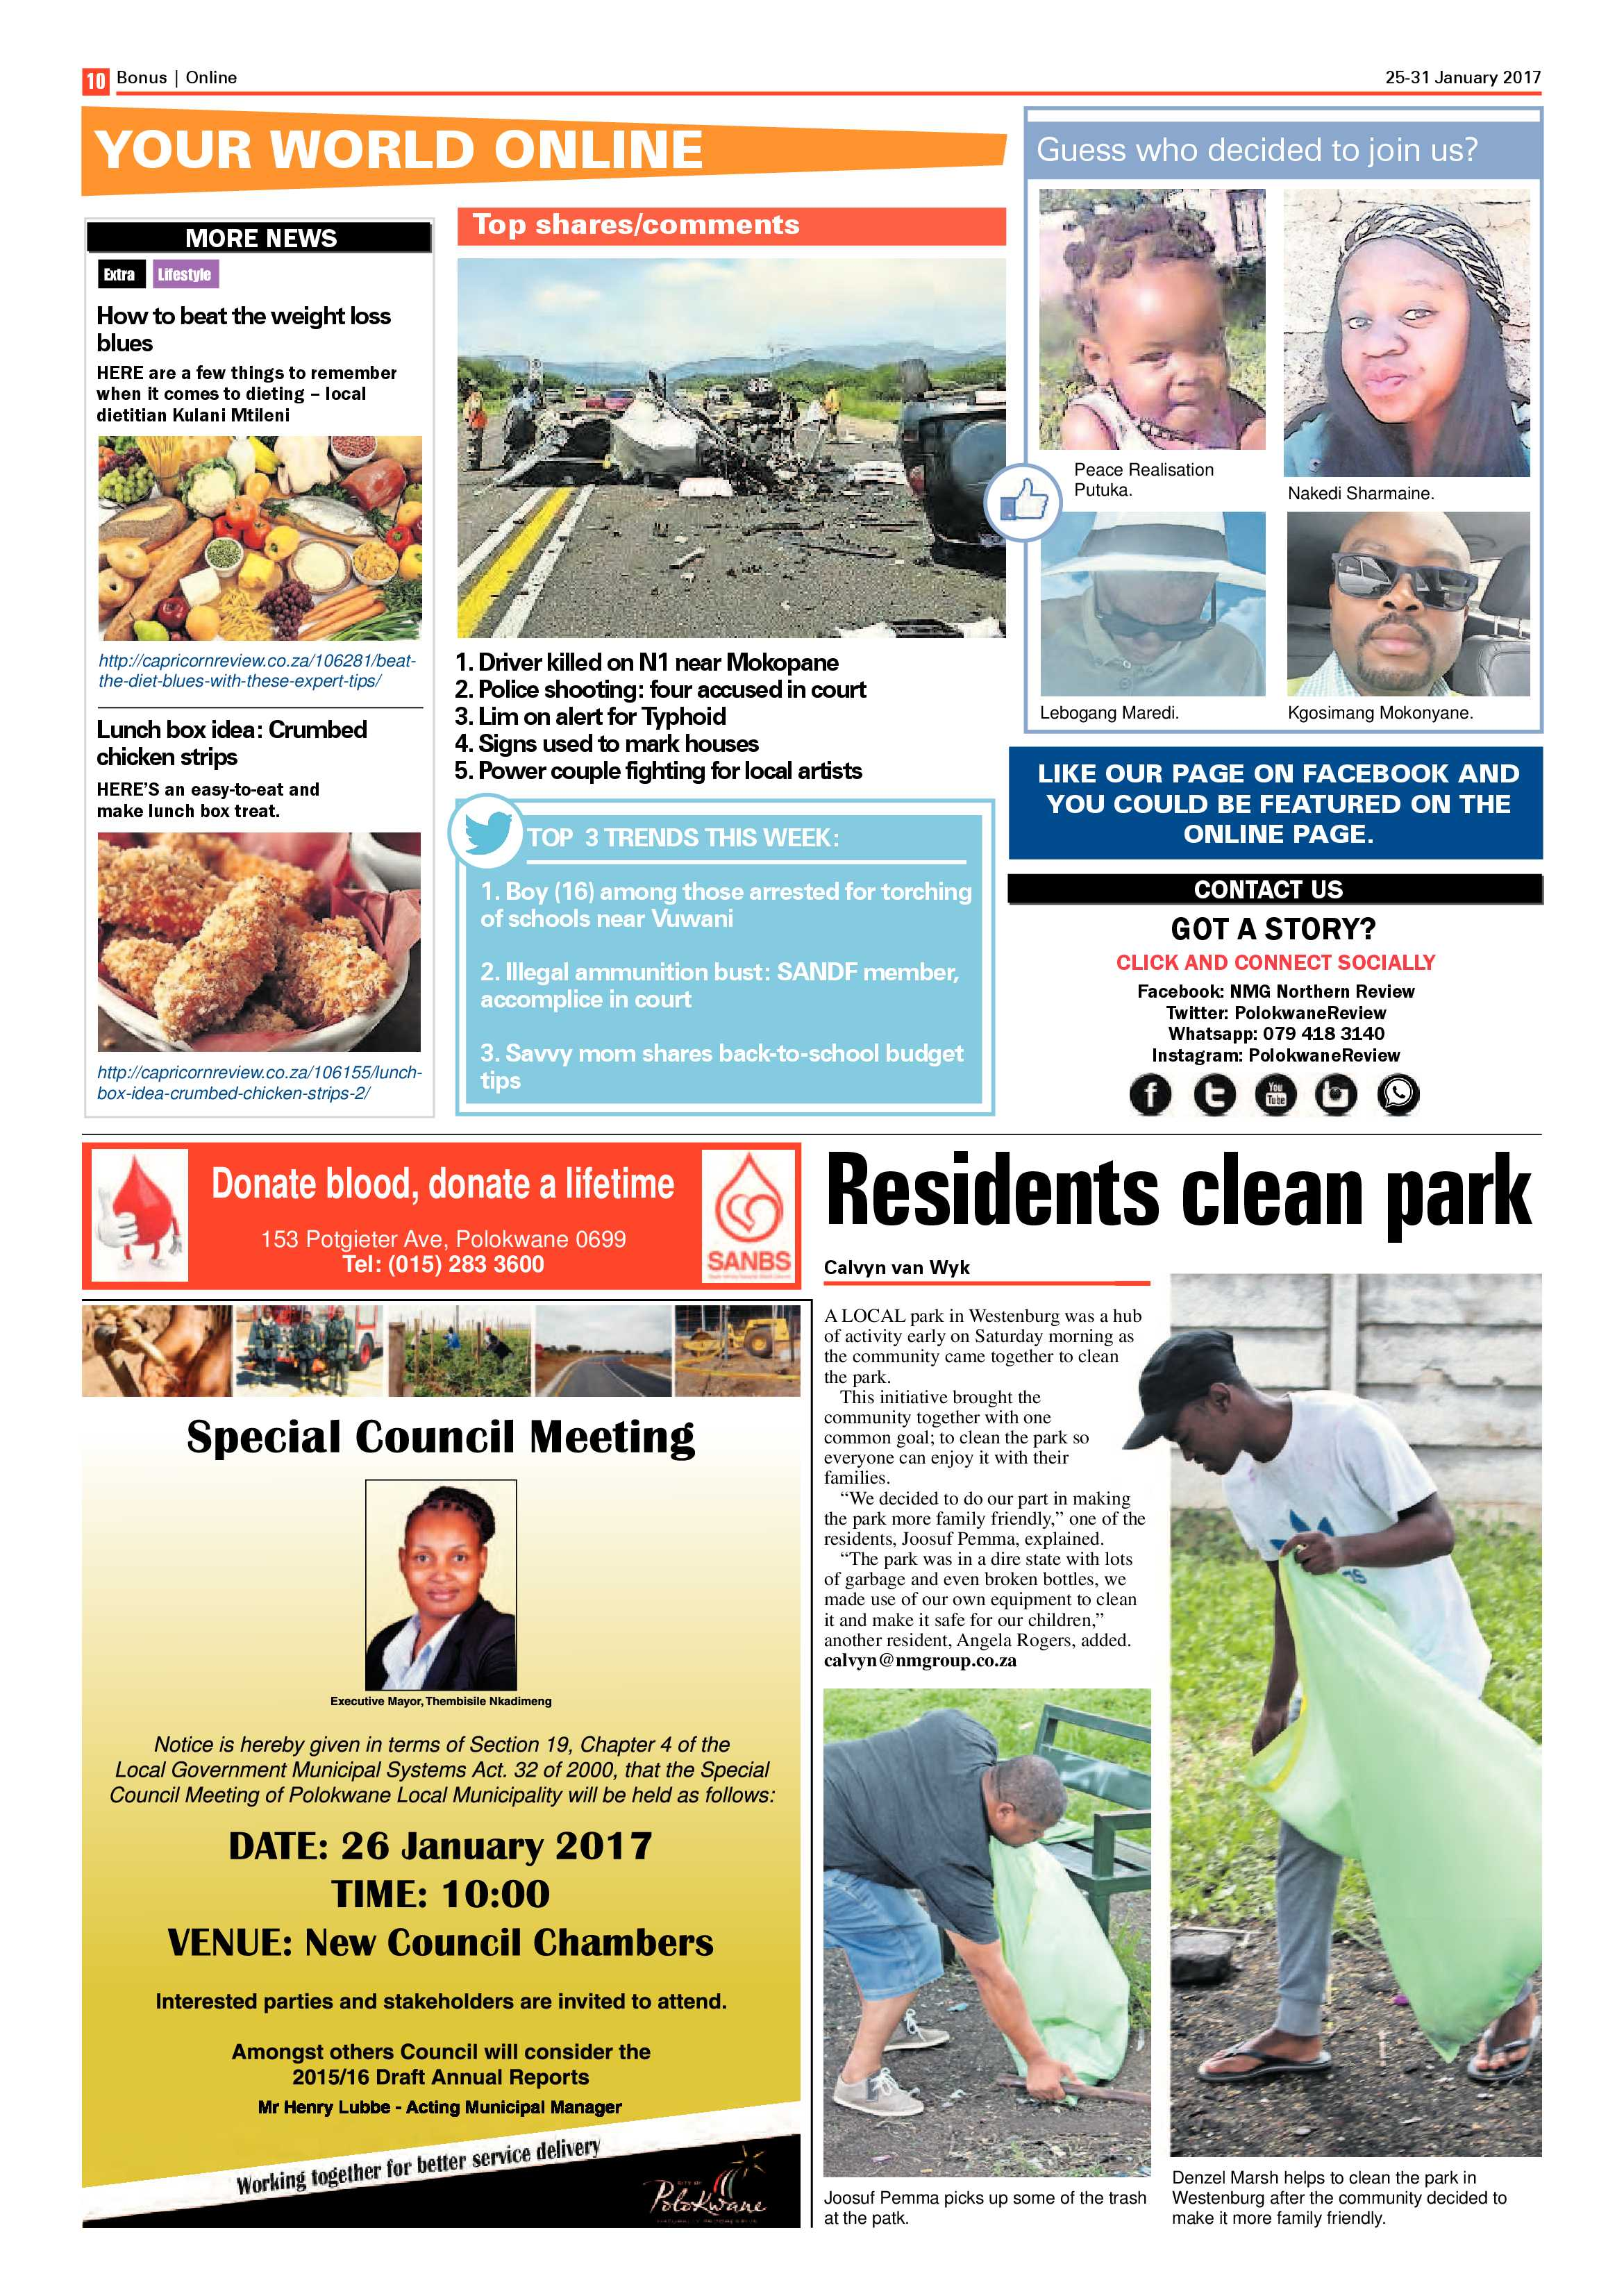 review-bonus-25-january-2017-epapers-page-10